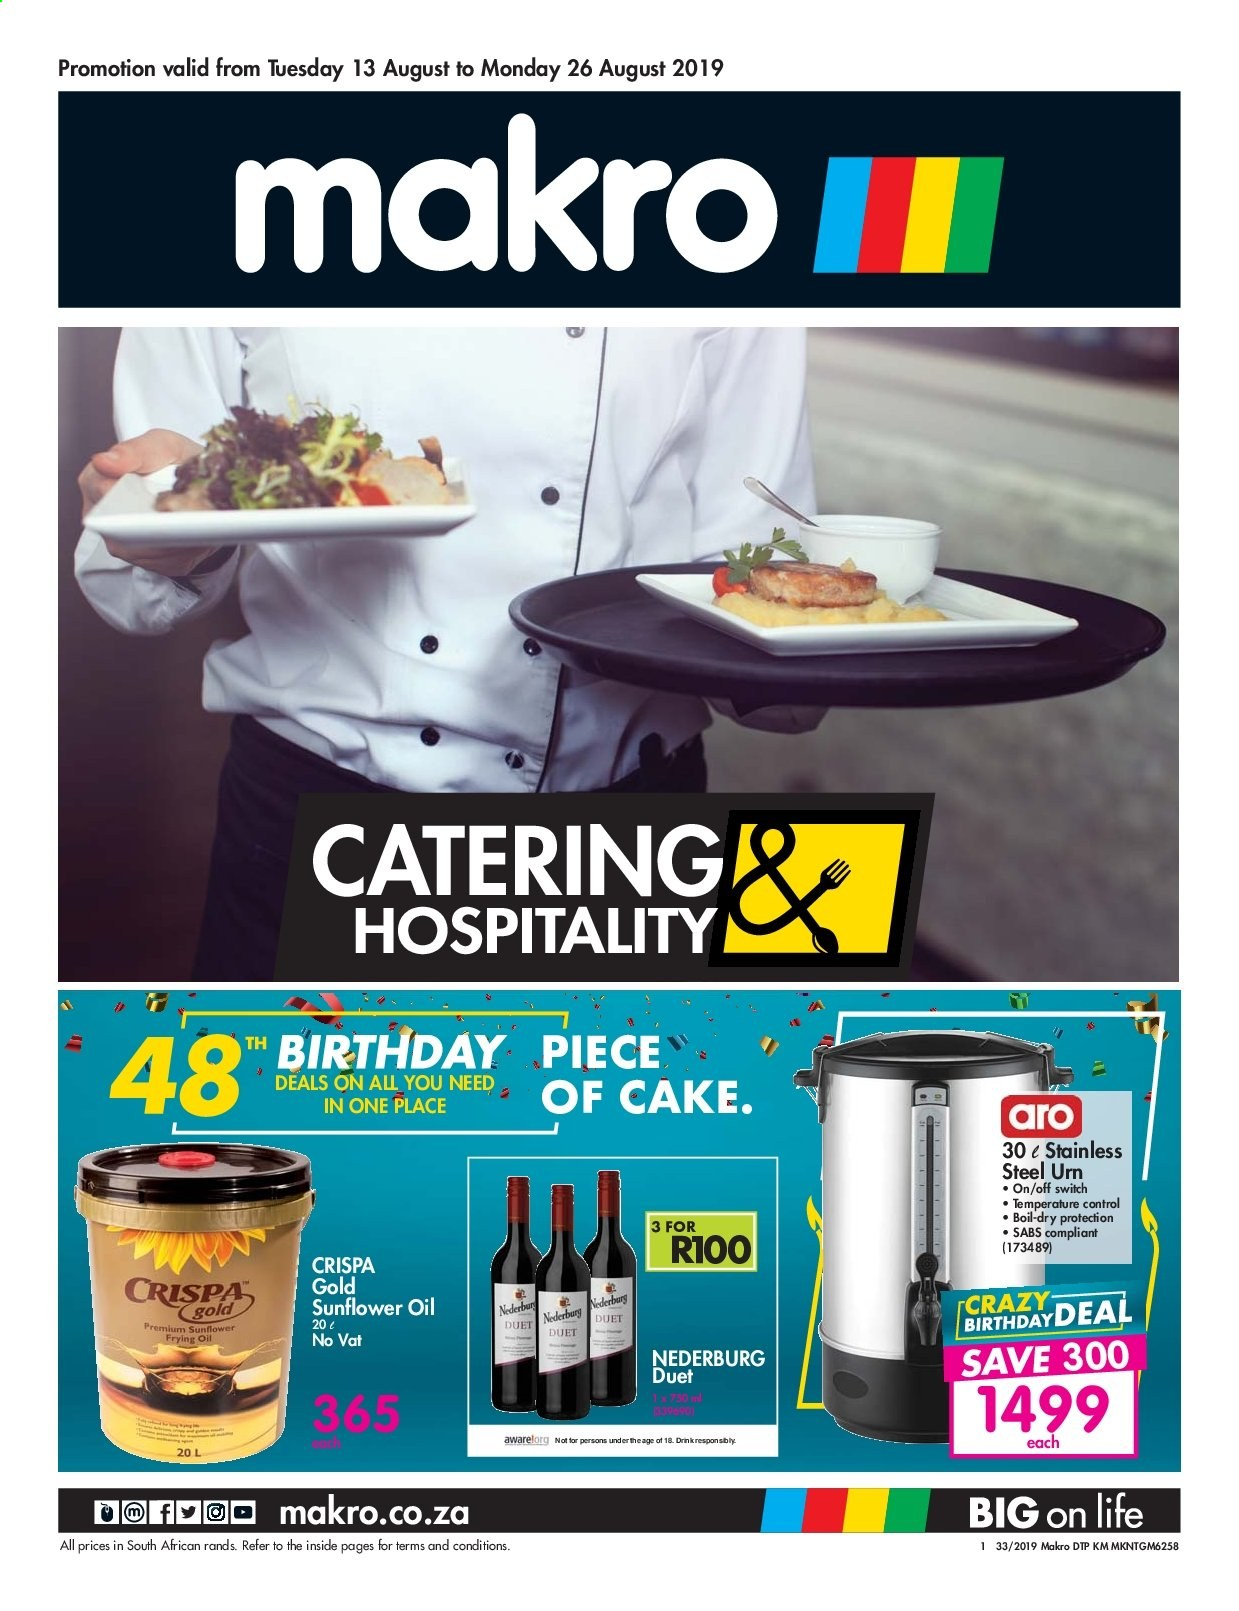 Makro special - 08.13.2019 - 08.26.2019 - Sales products - sunflower oil, switch, cake, drink, sunflower, oil. Page 1.